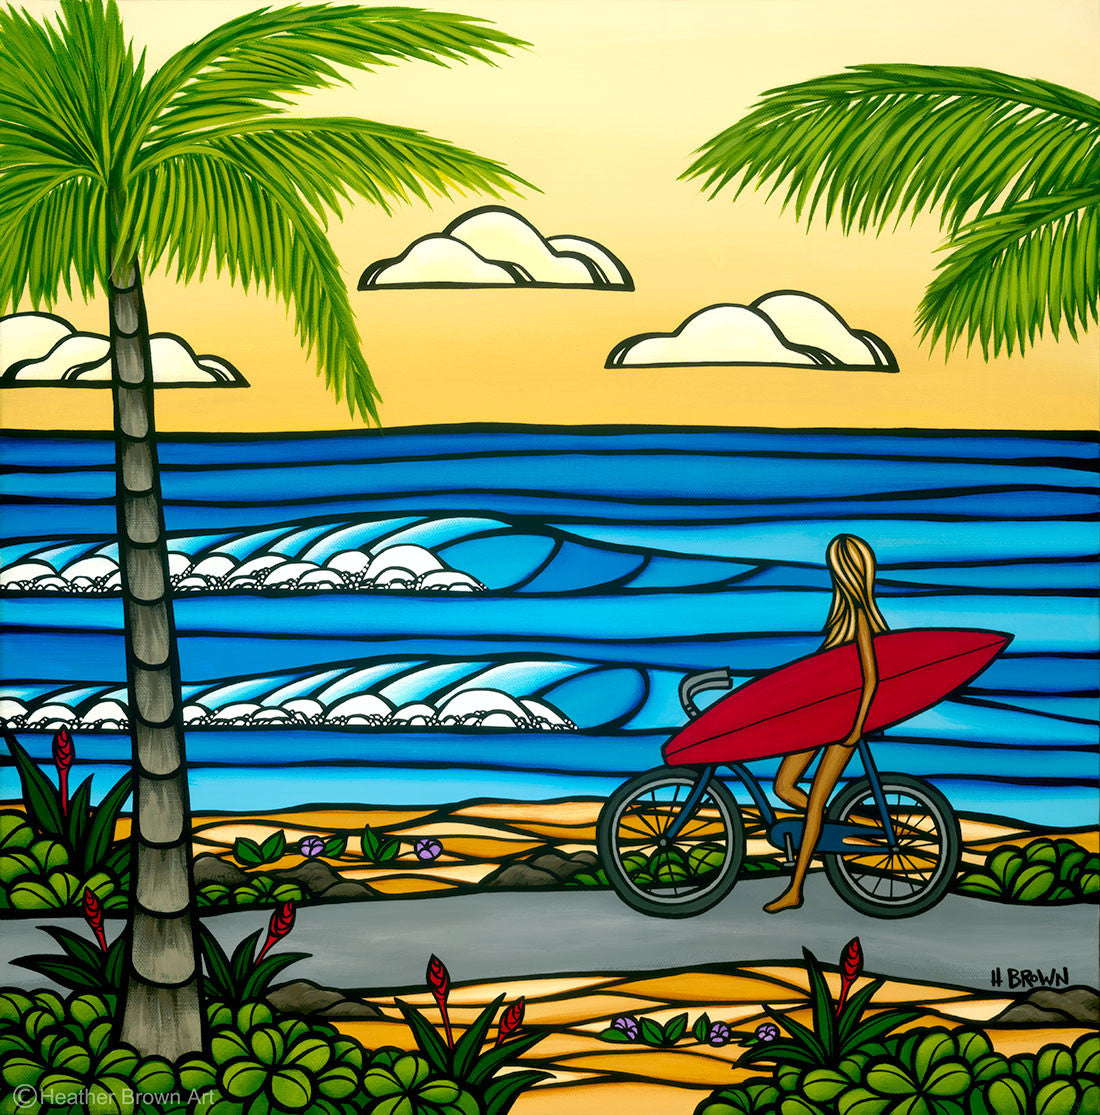 Beach Cruise / 20 x 20 or 30 x 30 / giclee prints on canvas